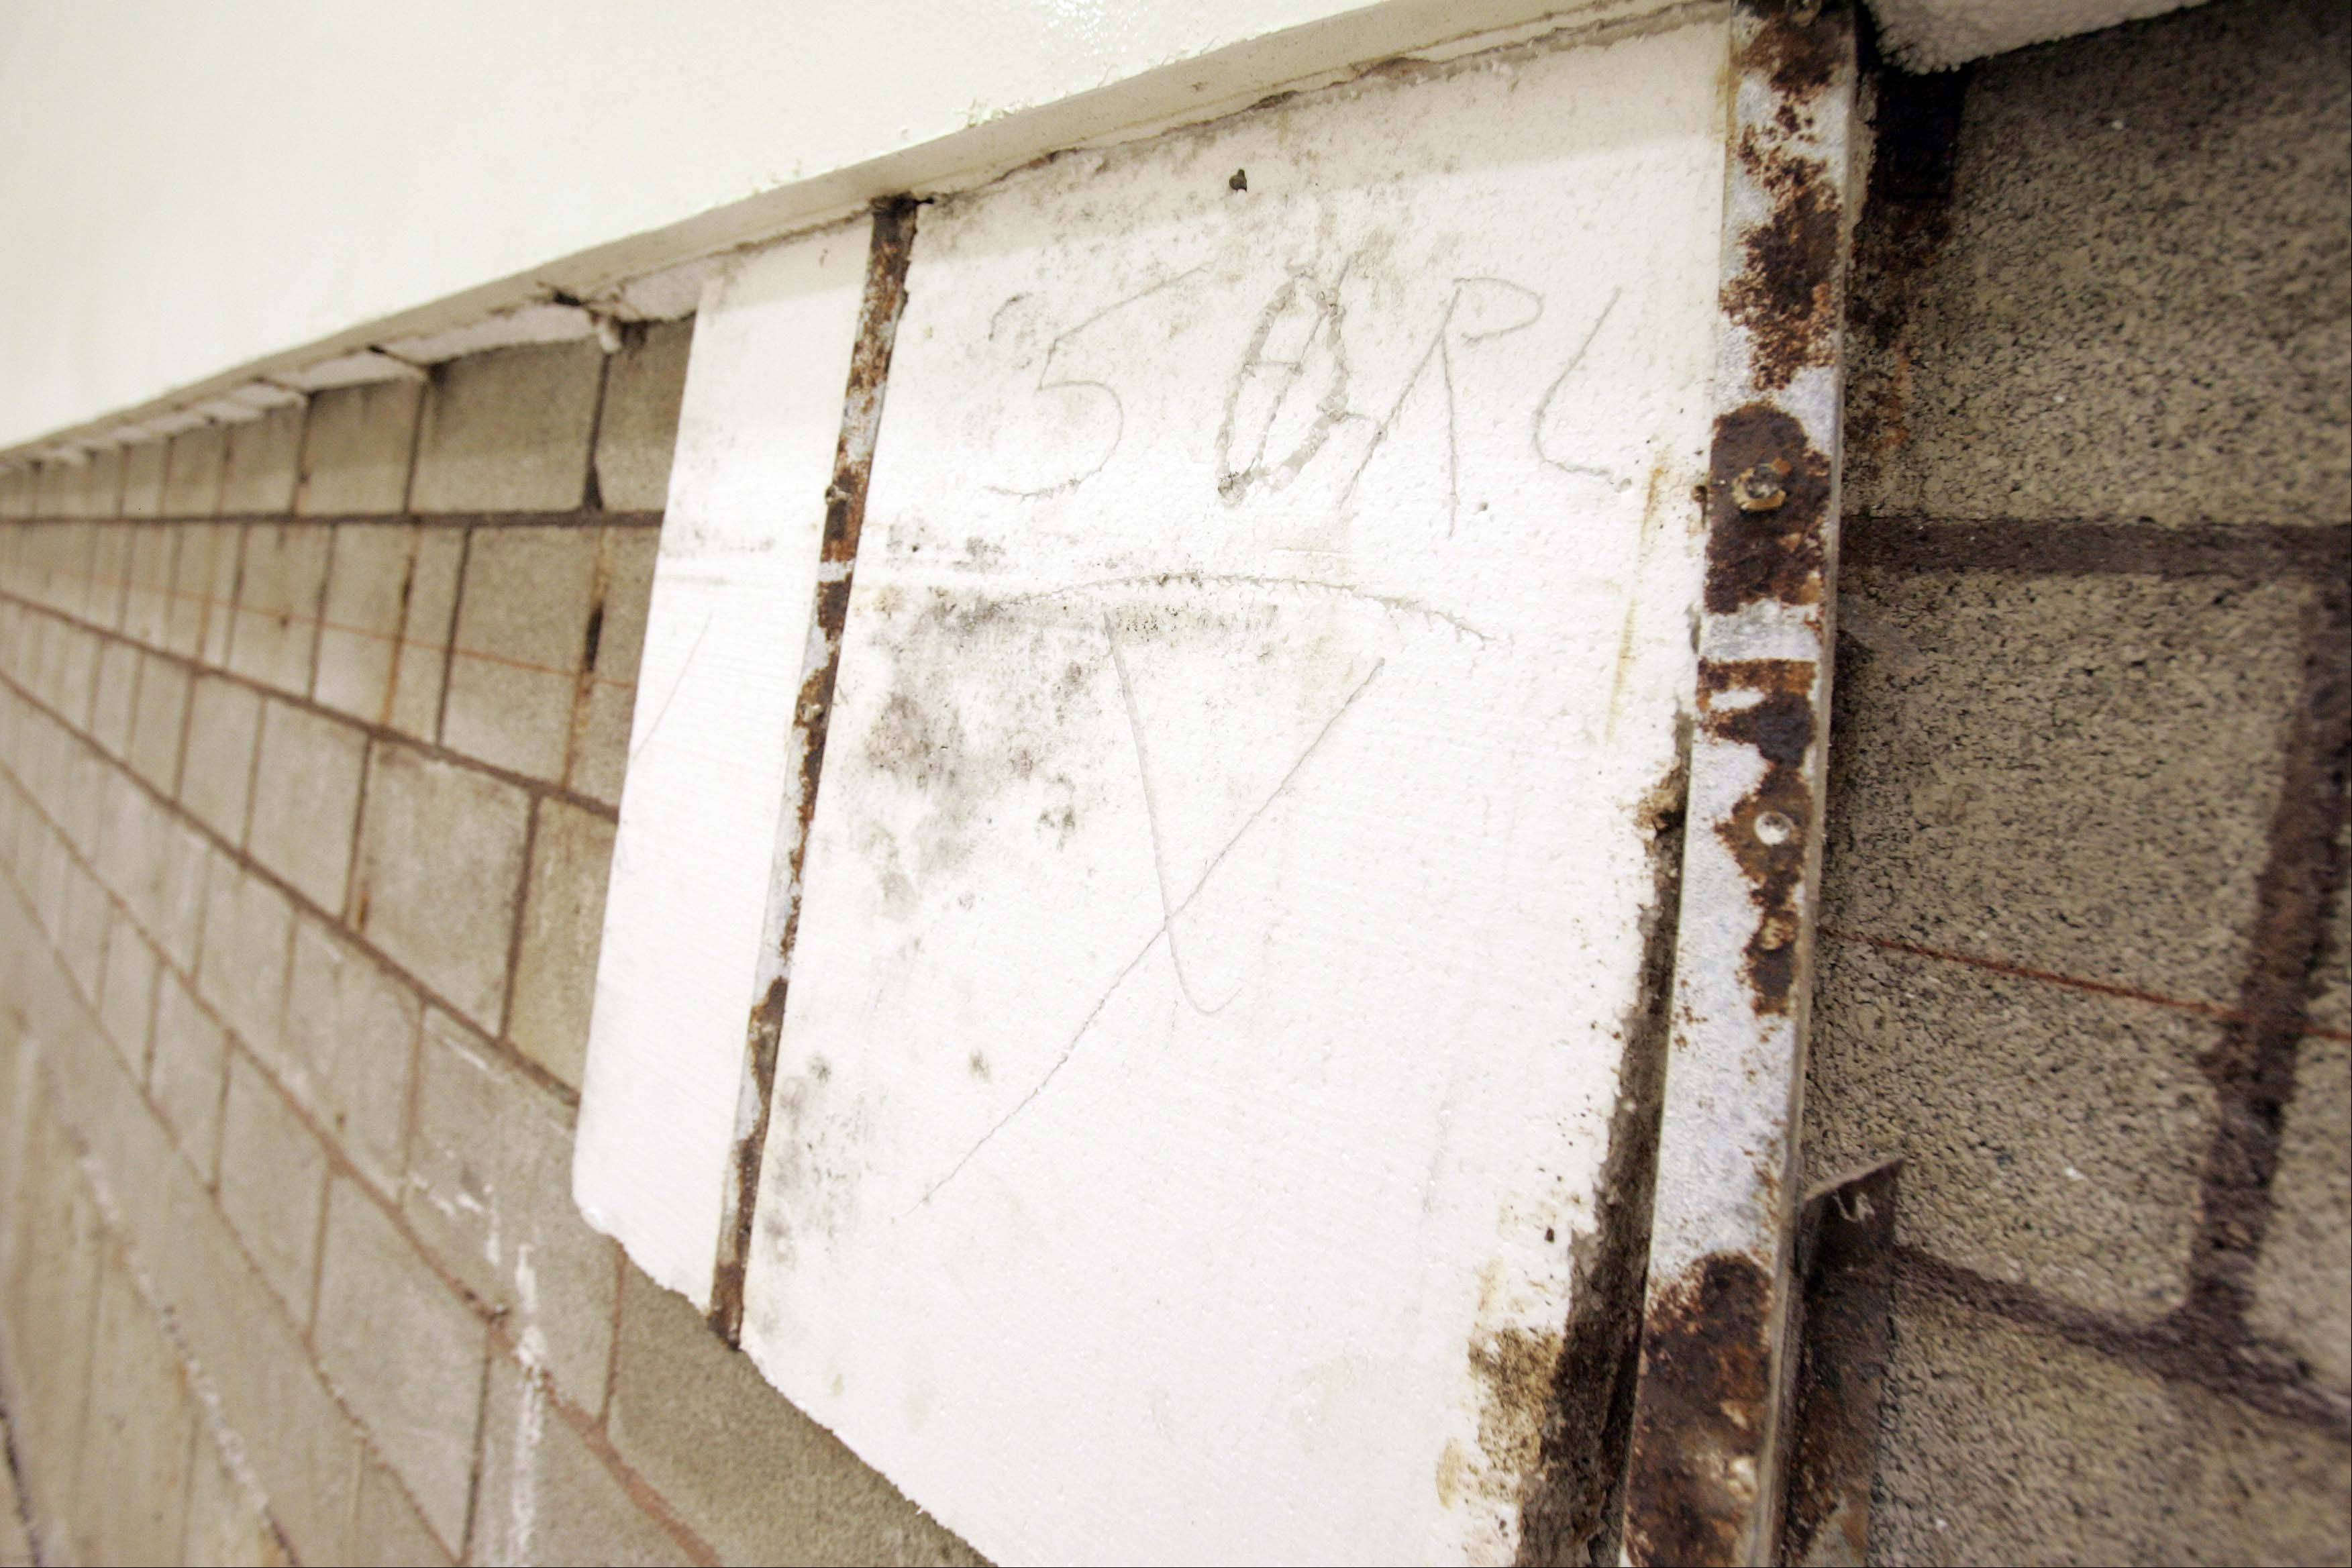 Mold was found in the north wall of racquetball court 3 at the Norris Recreation Center in St. Charles.